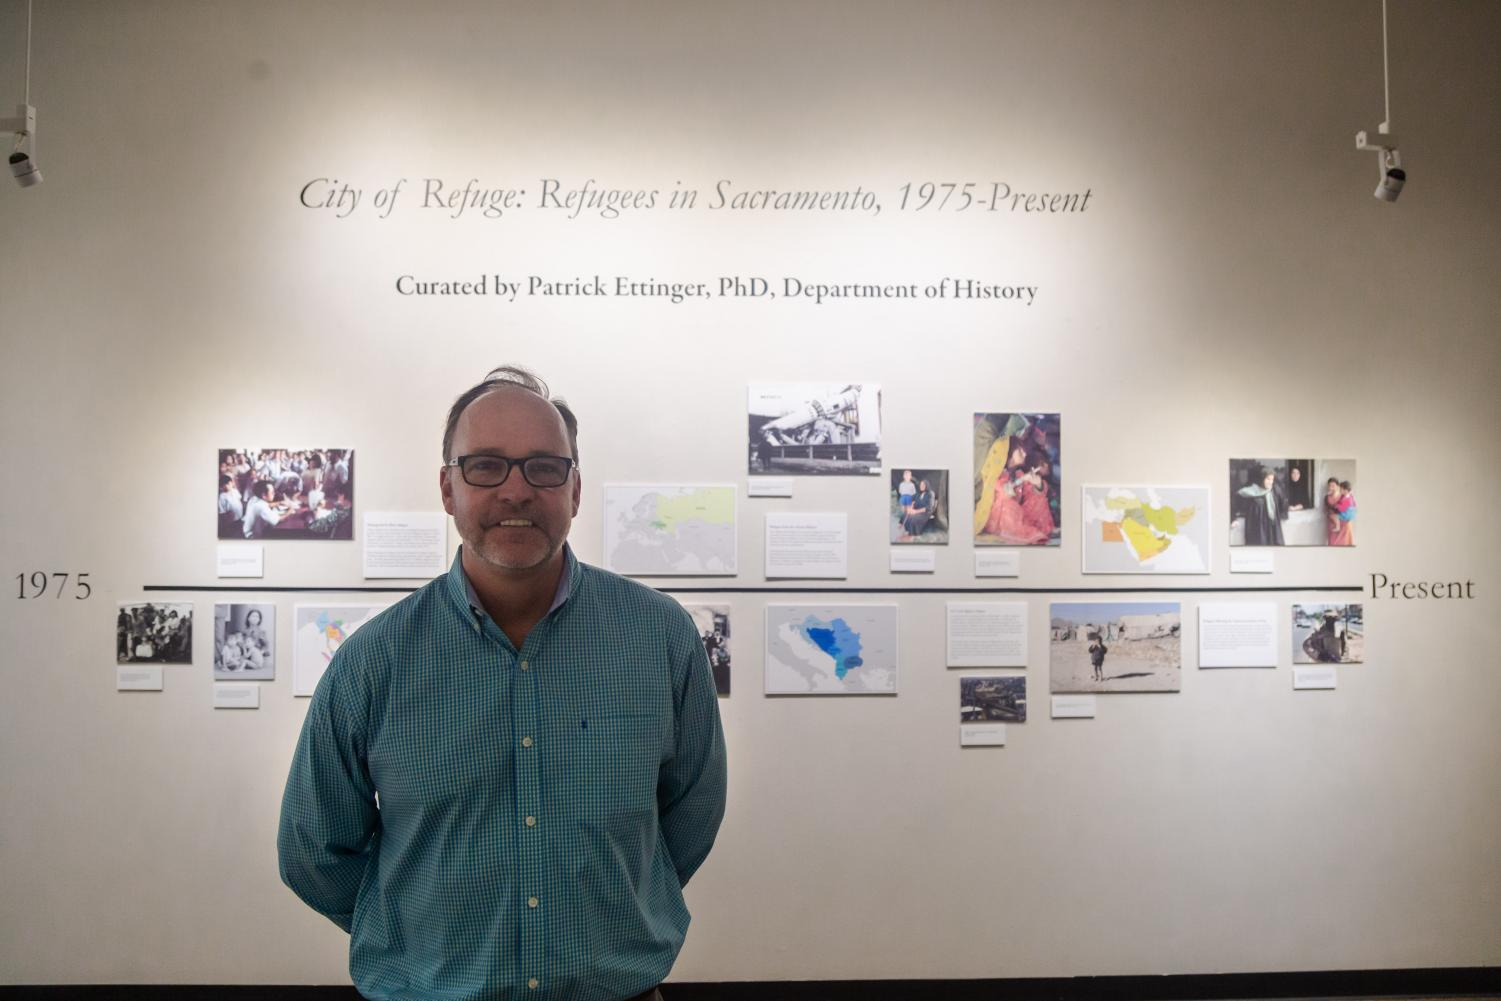 Patrick Ettinger, professor and director of the the public history program at Sac State, is the curator for the refugee gallery that will be on display in Sac State's library exhibit from April 9 - 26.